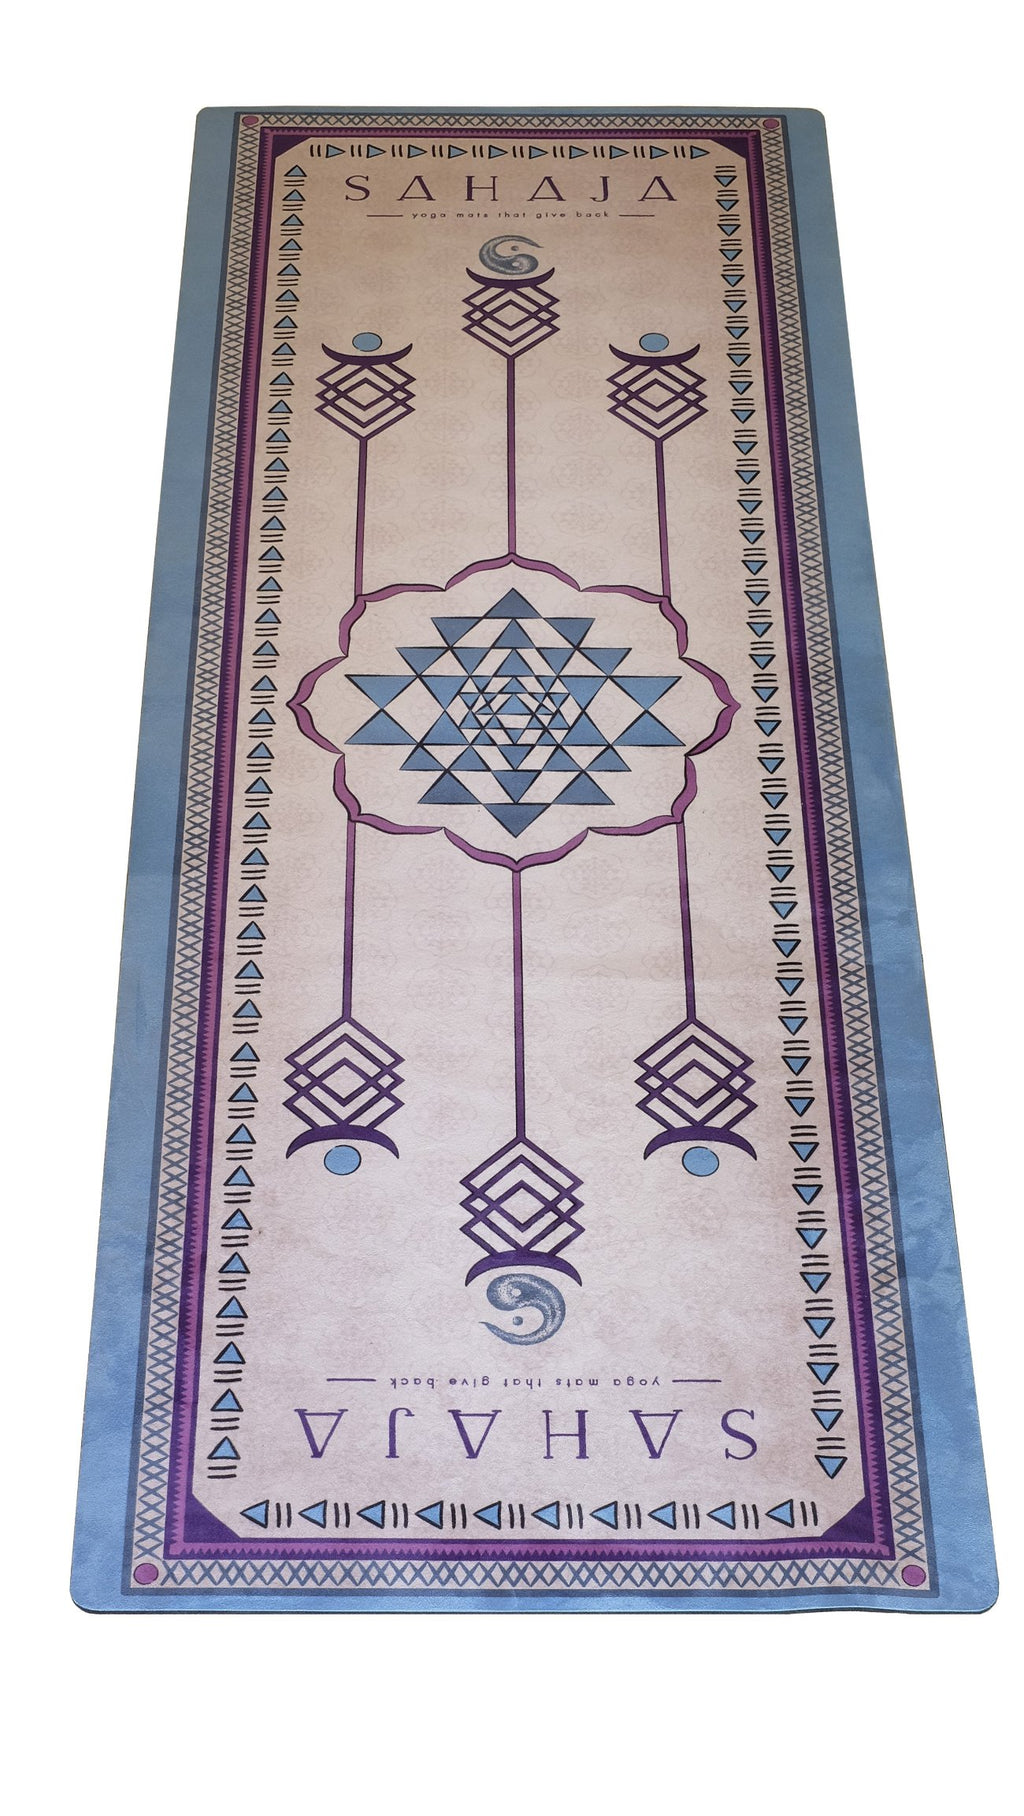 Sahaja yoga mats. Best printed yoga mats all based on scared geometry and are limited edition yoga mats that give back.